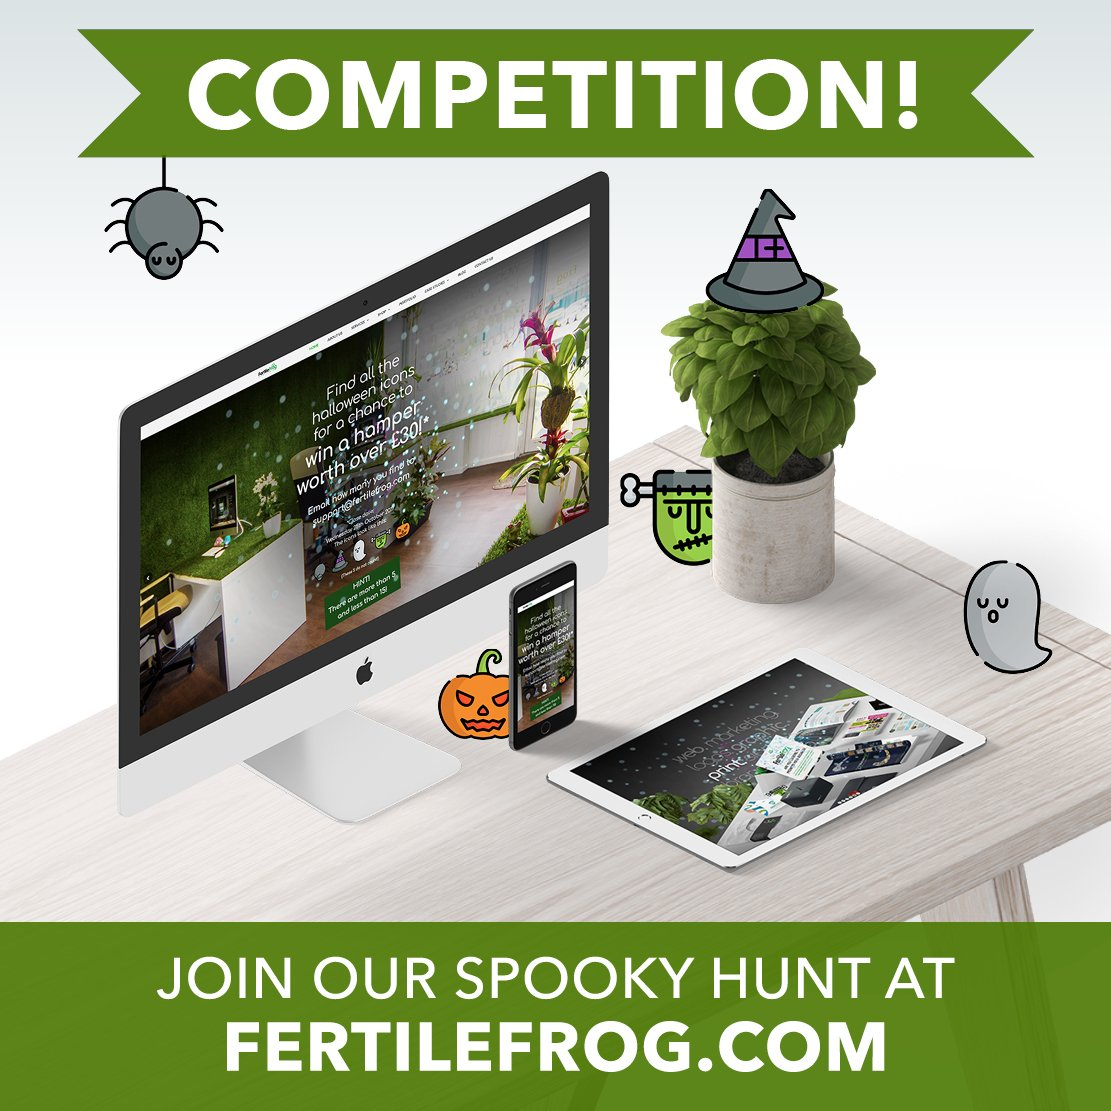 fertilefrog photo